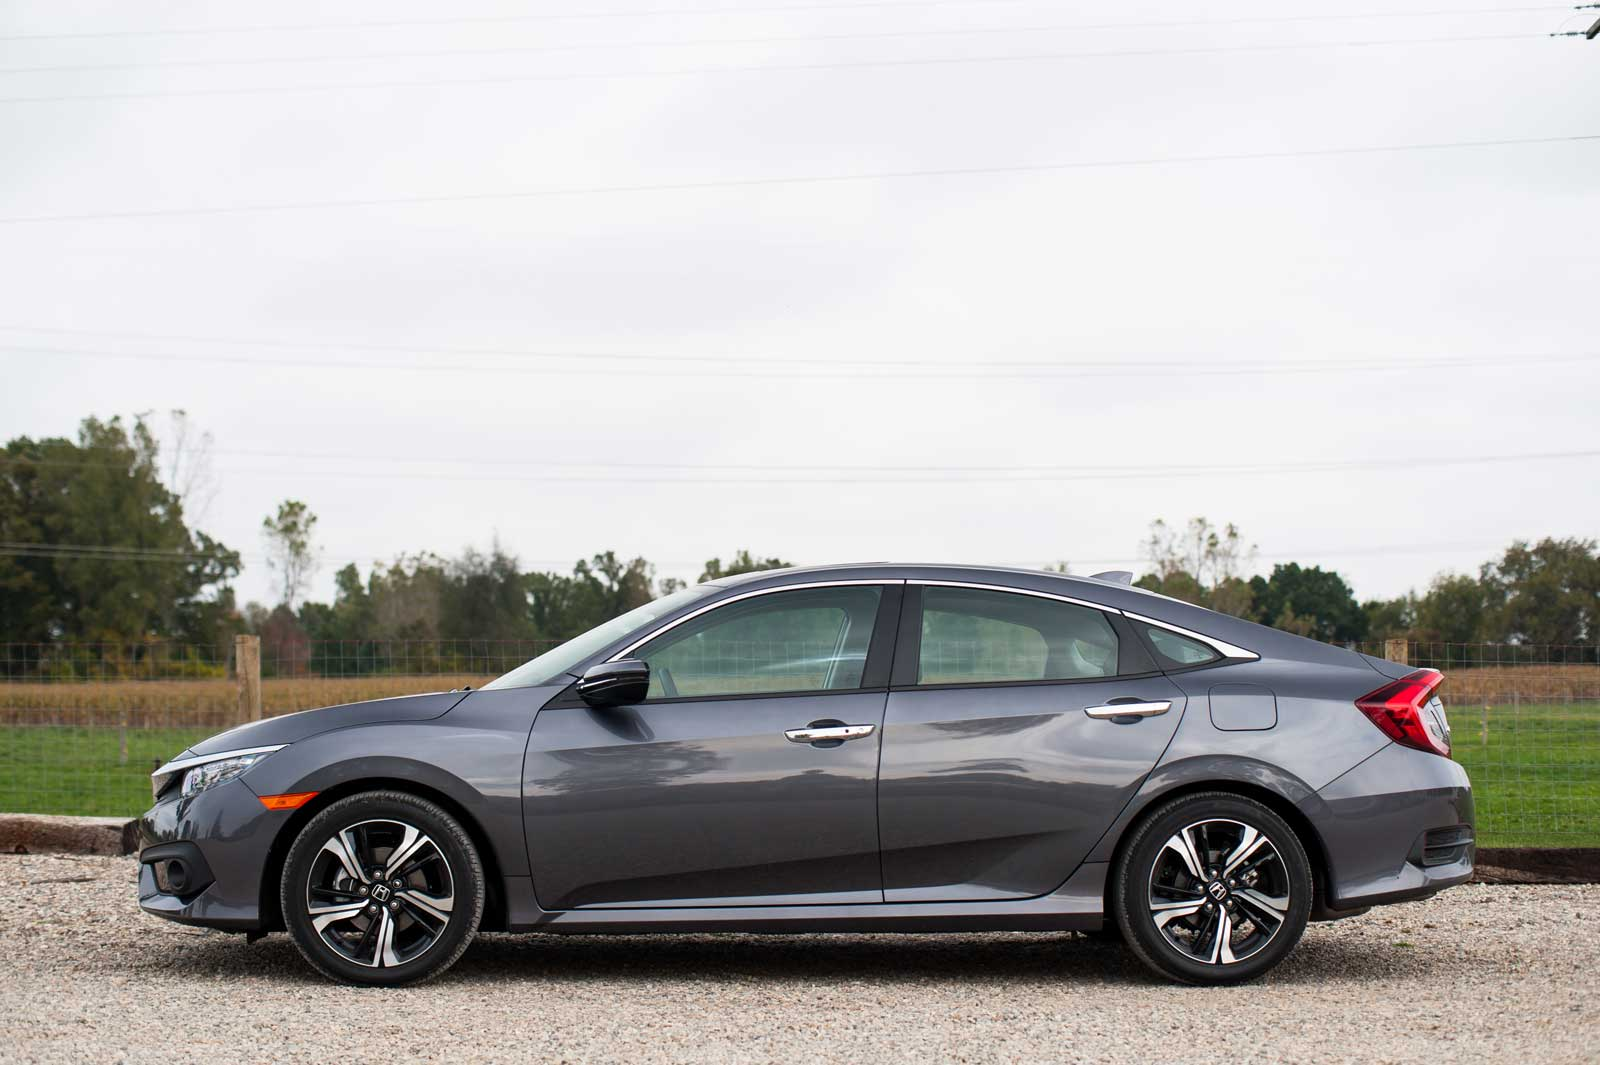 2016 Honda Civic Engine Failures Fires Lead To Recall Of 42k Cars Diagram Car Release Date Side 01